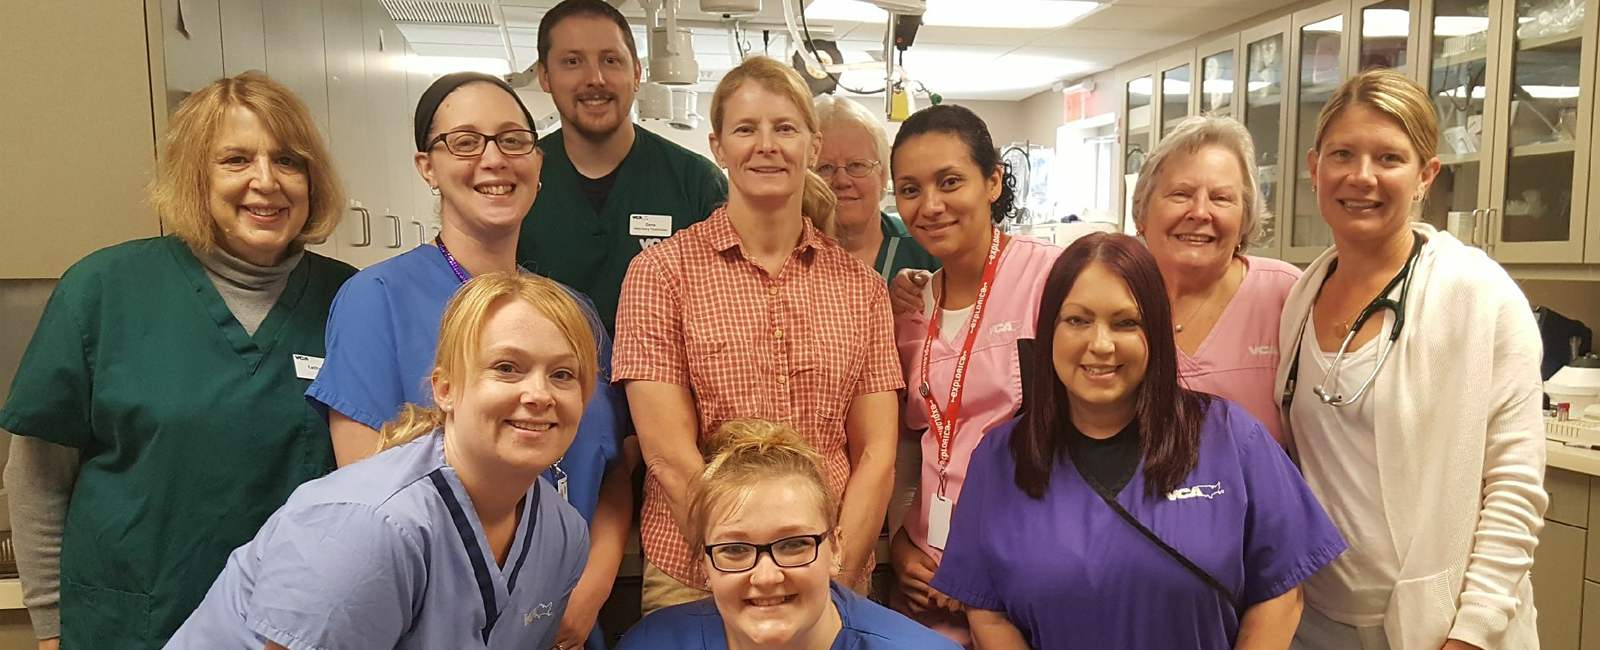 Team Picture of VCA Shaker Road Animal Hospital